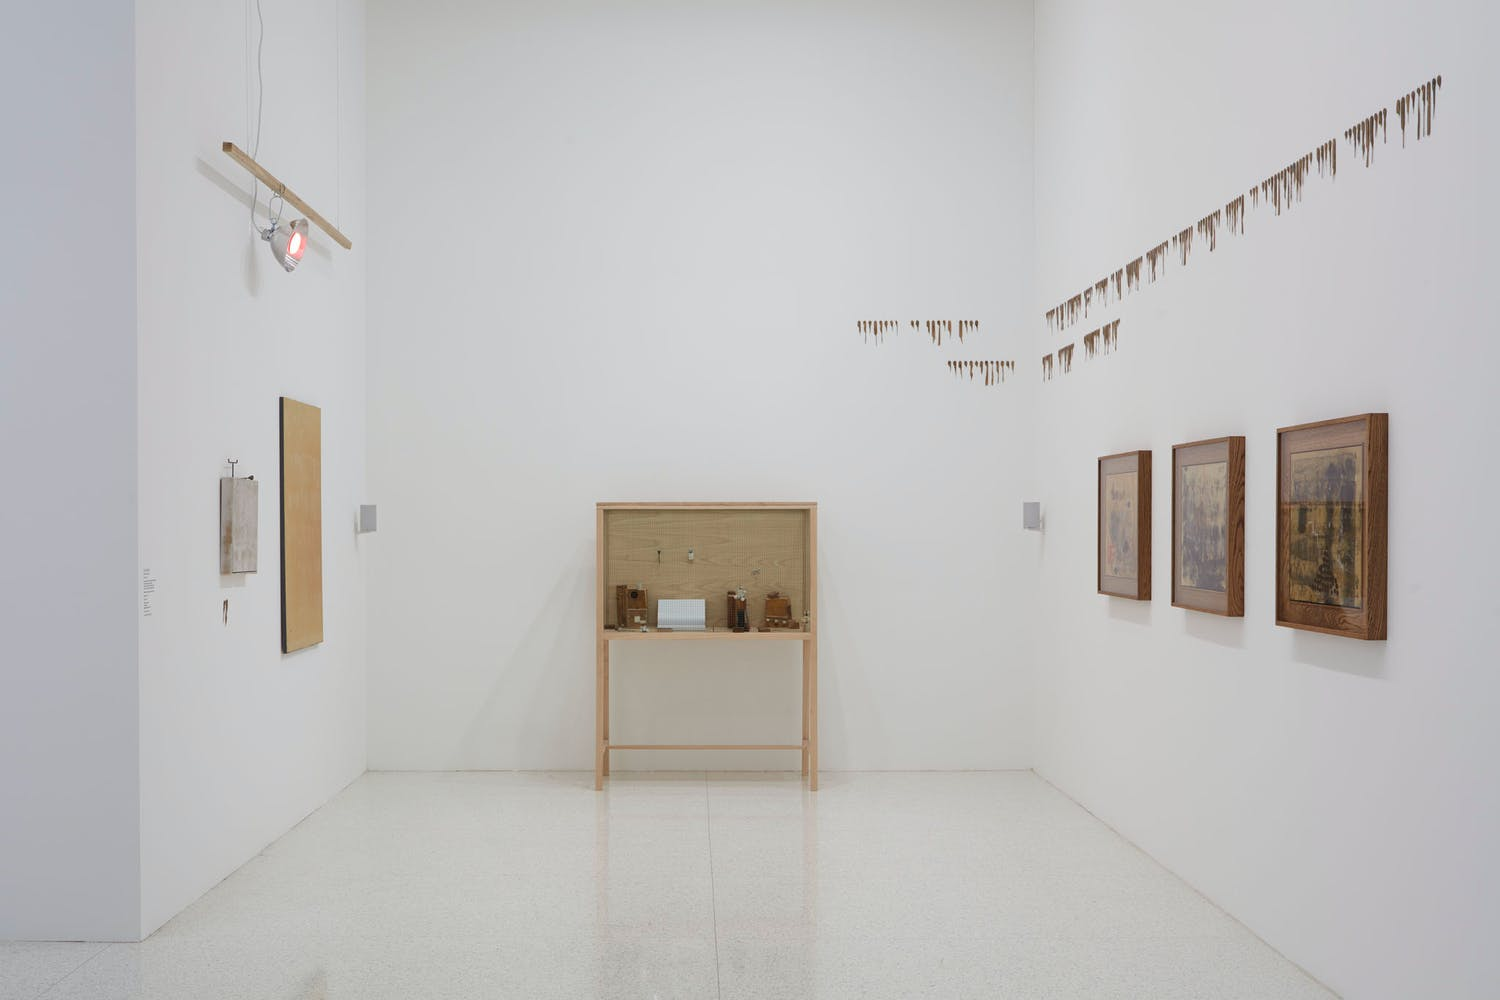 View of the exhibition Question the Wall Itself, 2016 (Photo: Gene Pittman, ©Walker Art Center)